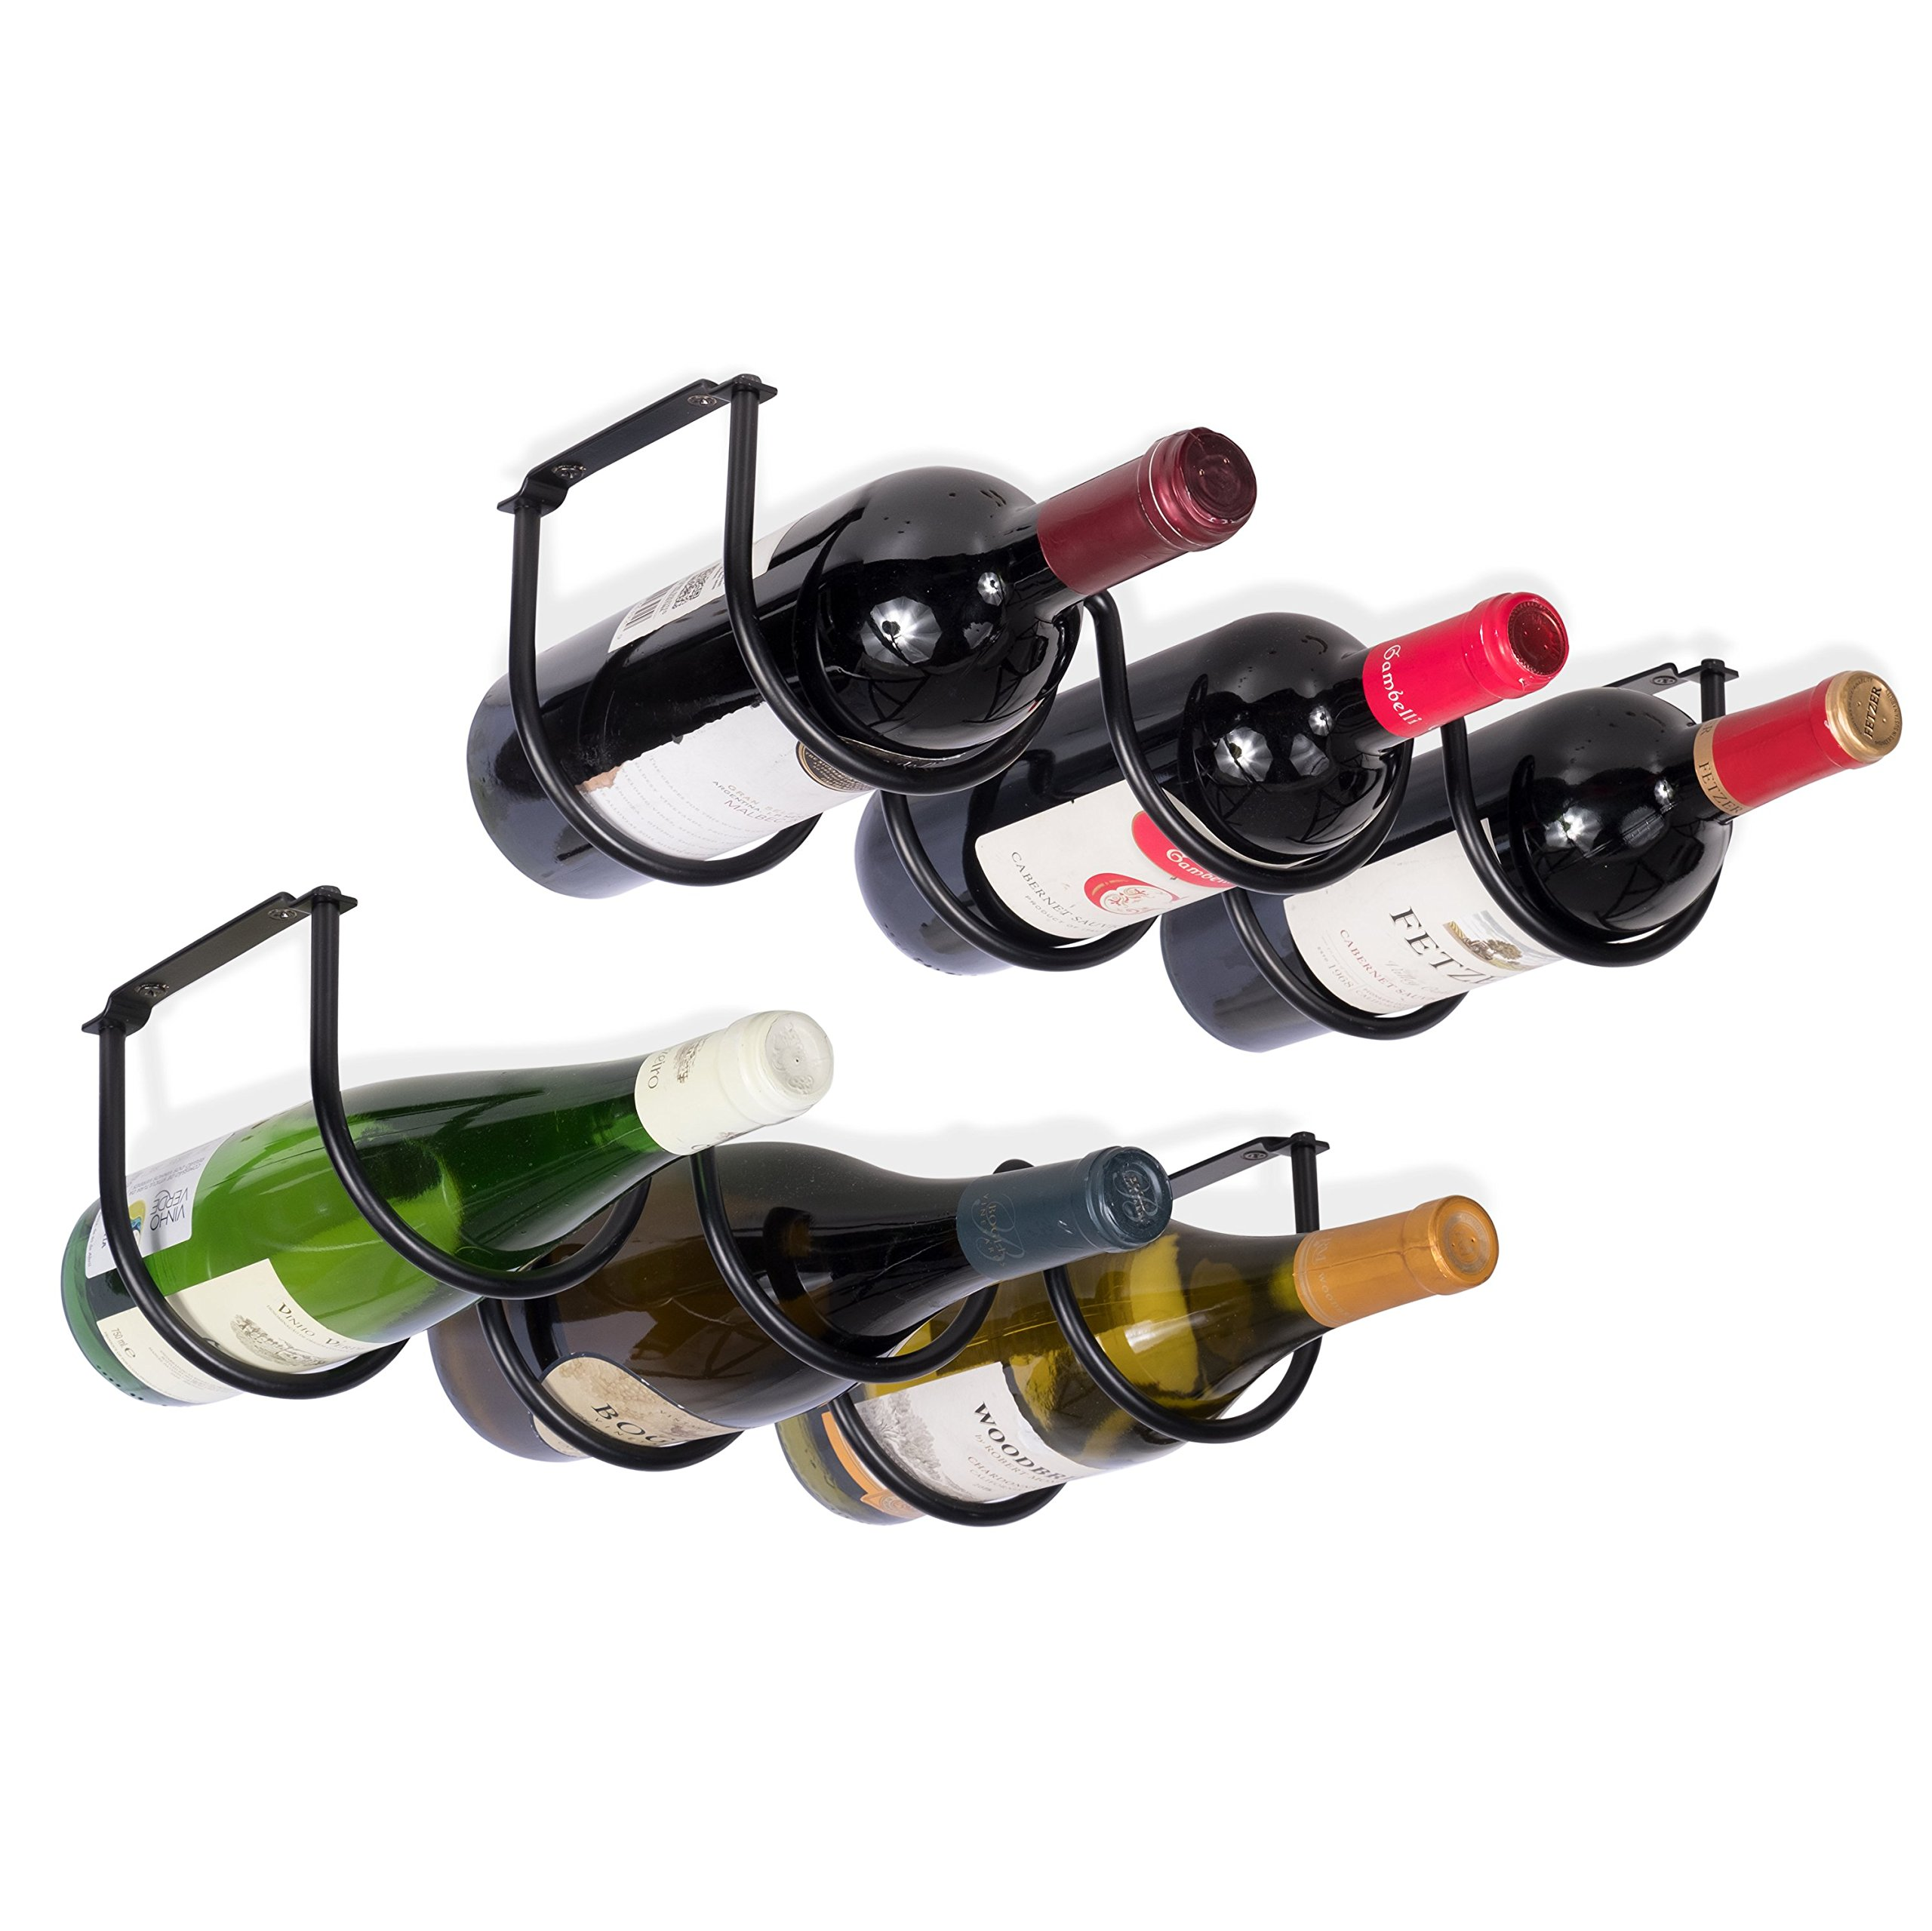 Wallniture Under Cabinet Durable Iron Wine Storage Rack for 6 Liquor Bottles Black